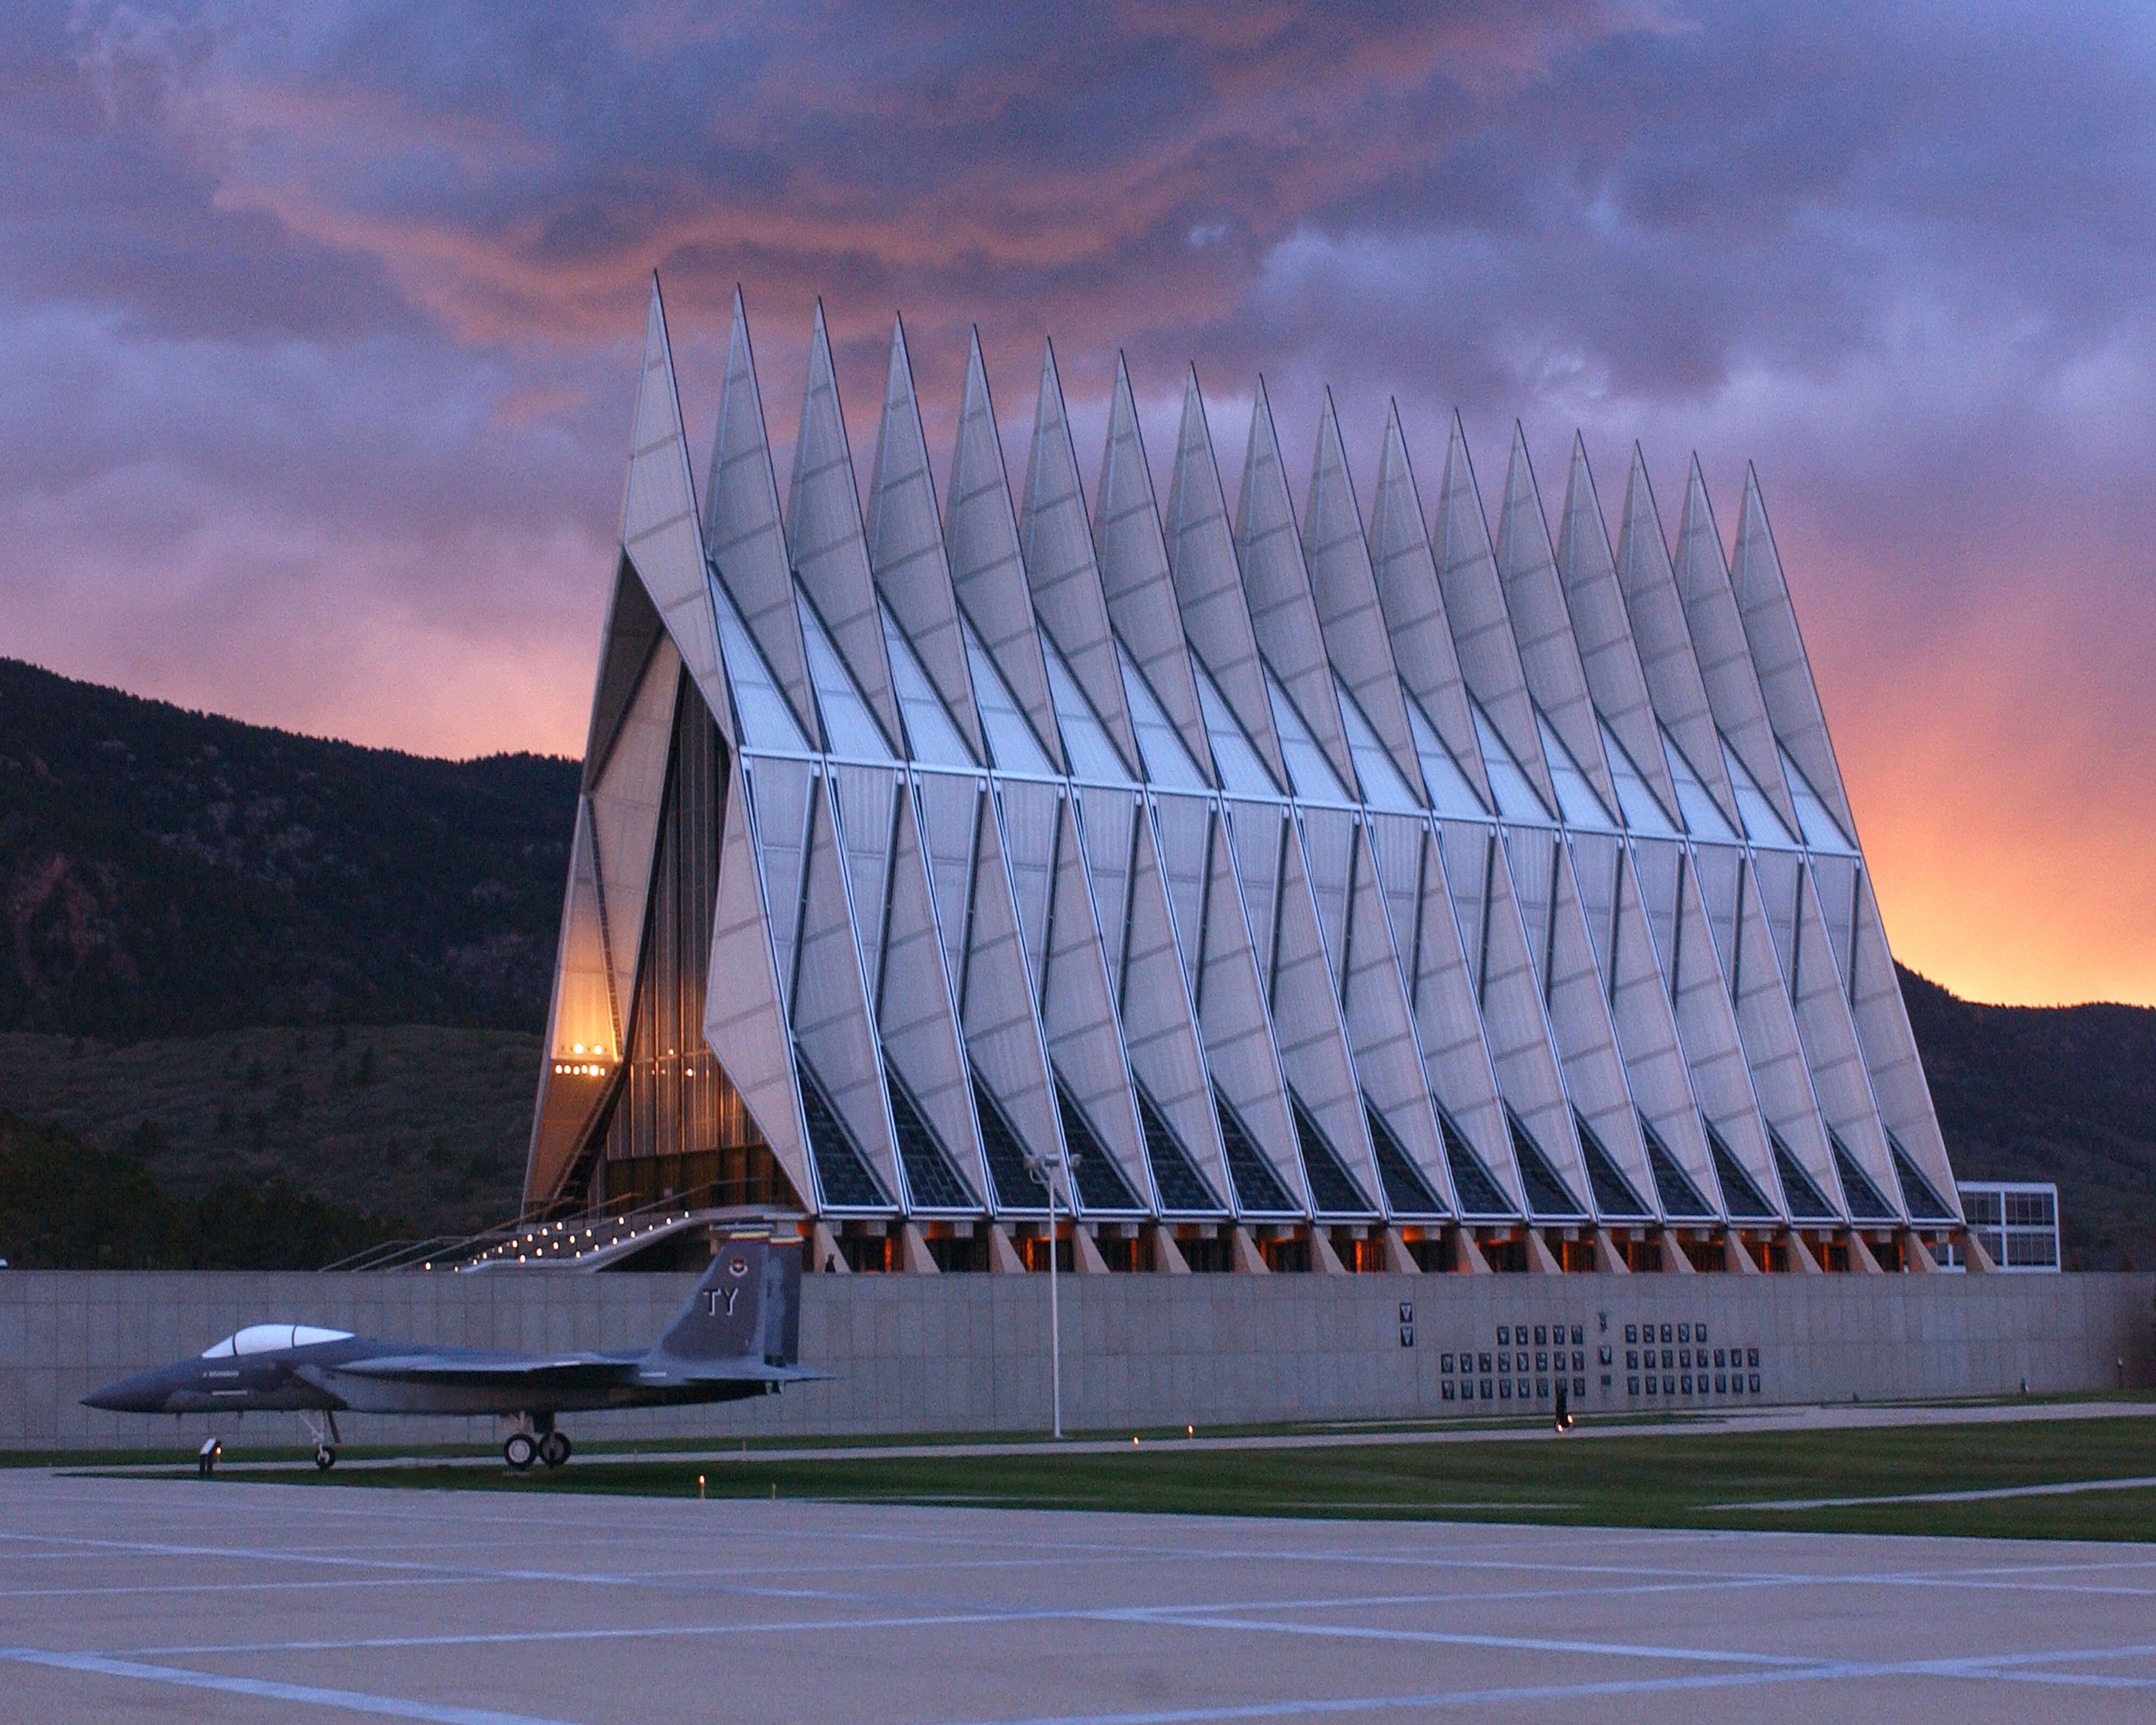 United States Air Force Academy, USAF Academy, CO